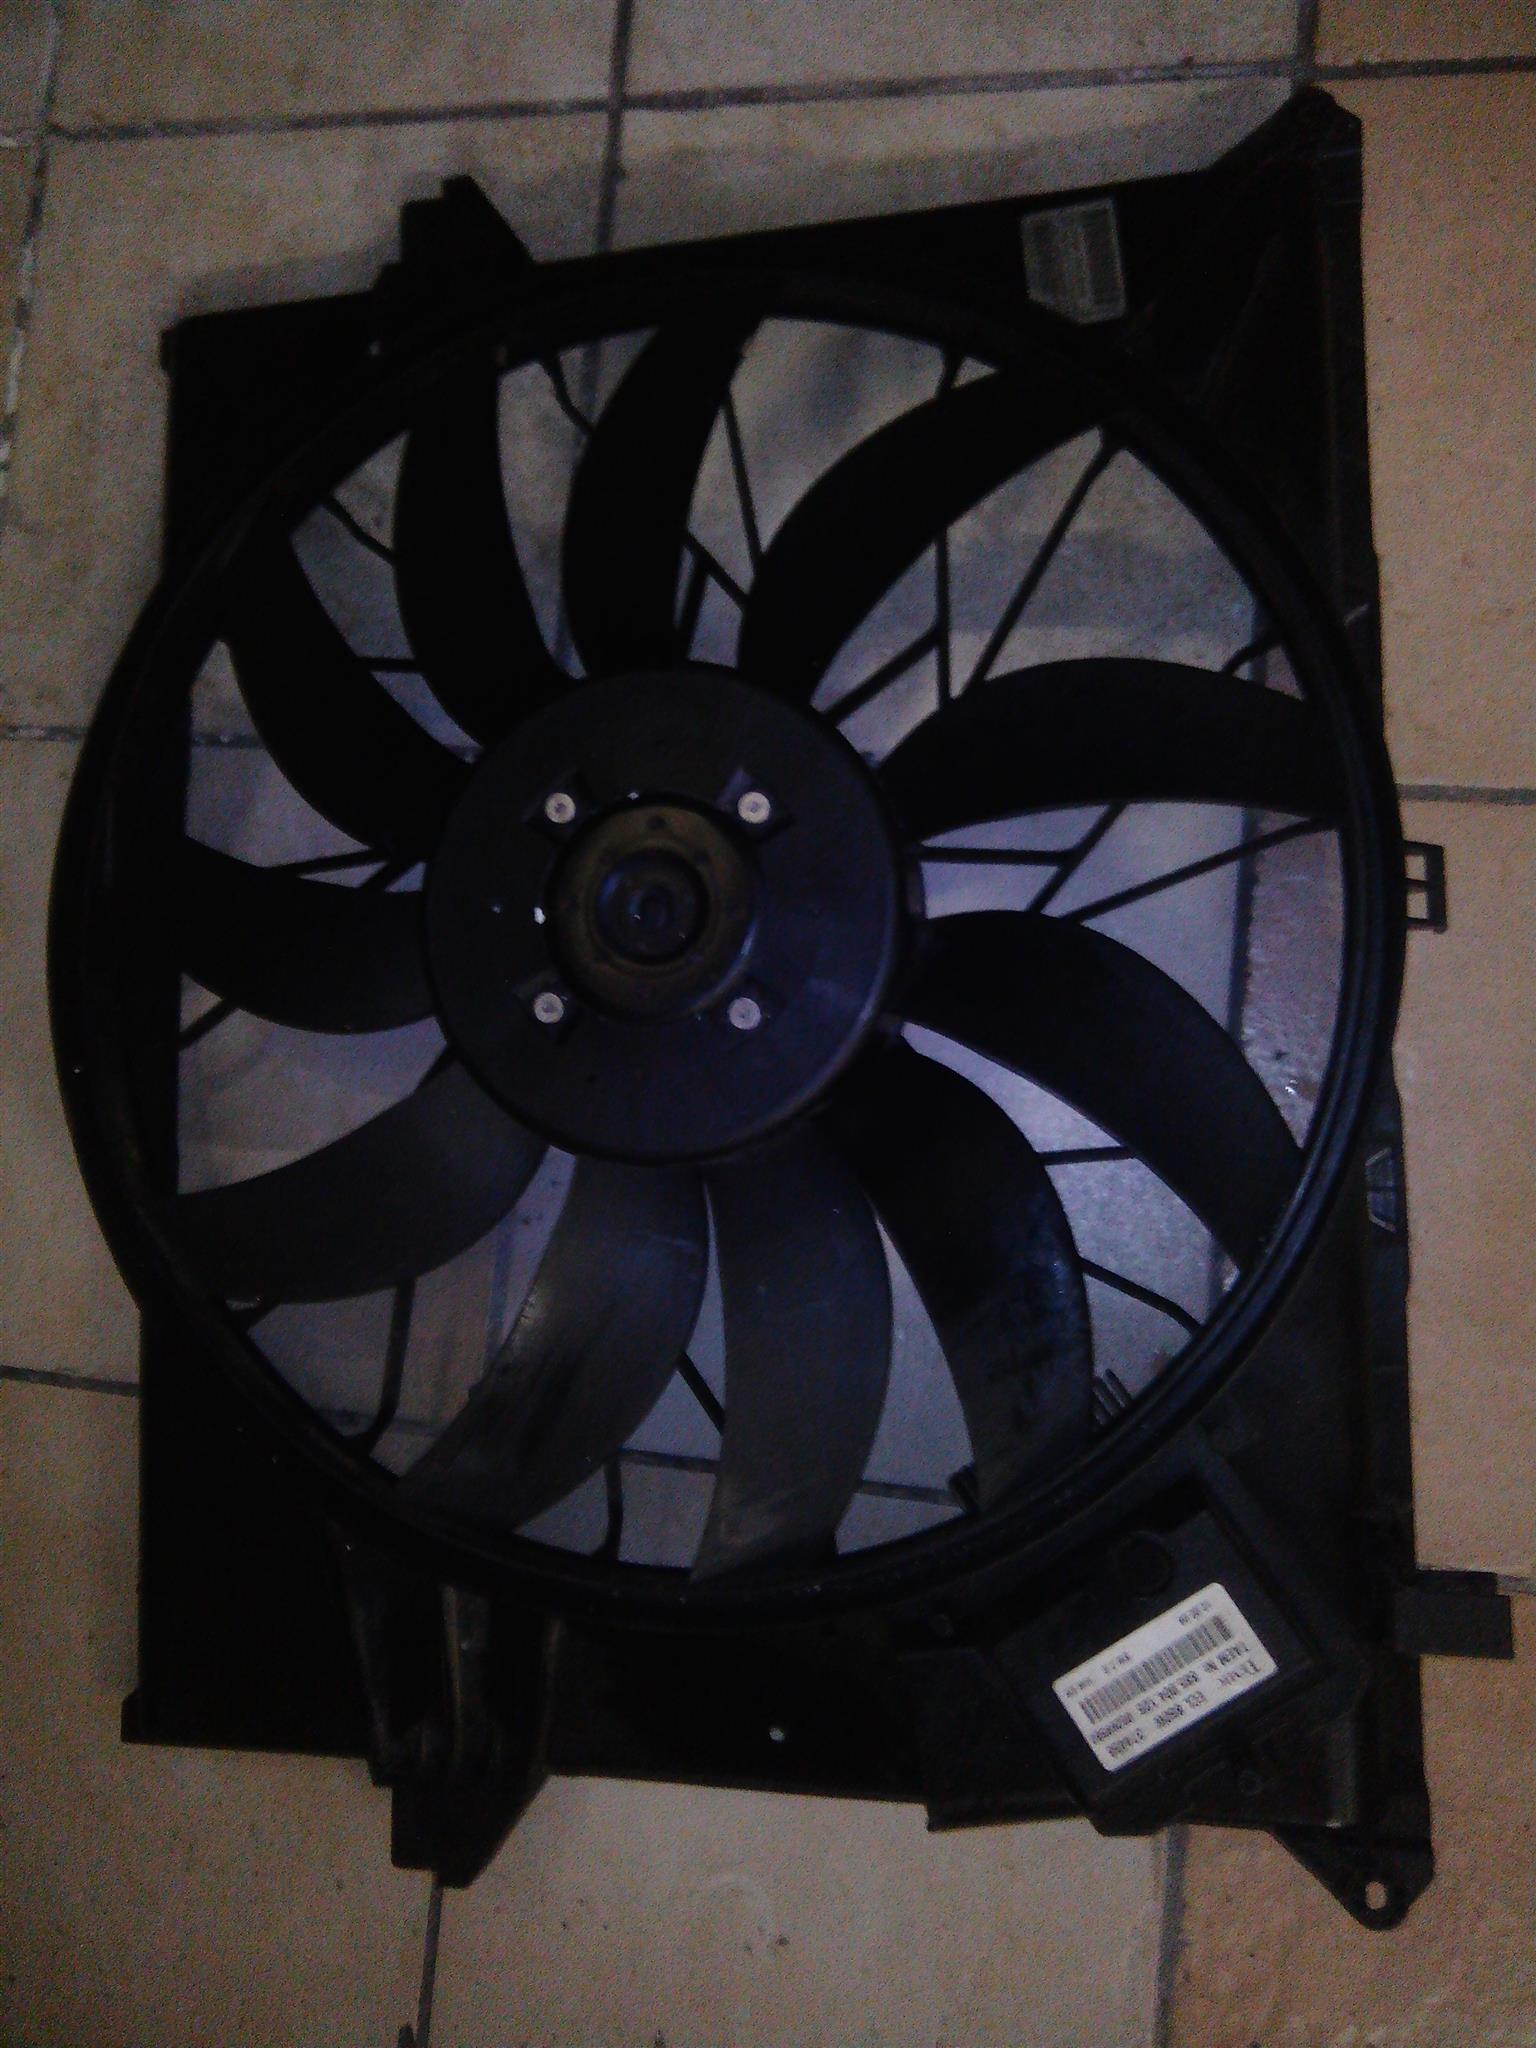 Mercedes Benz W164 radiator fan for sale